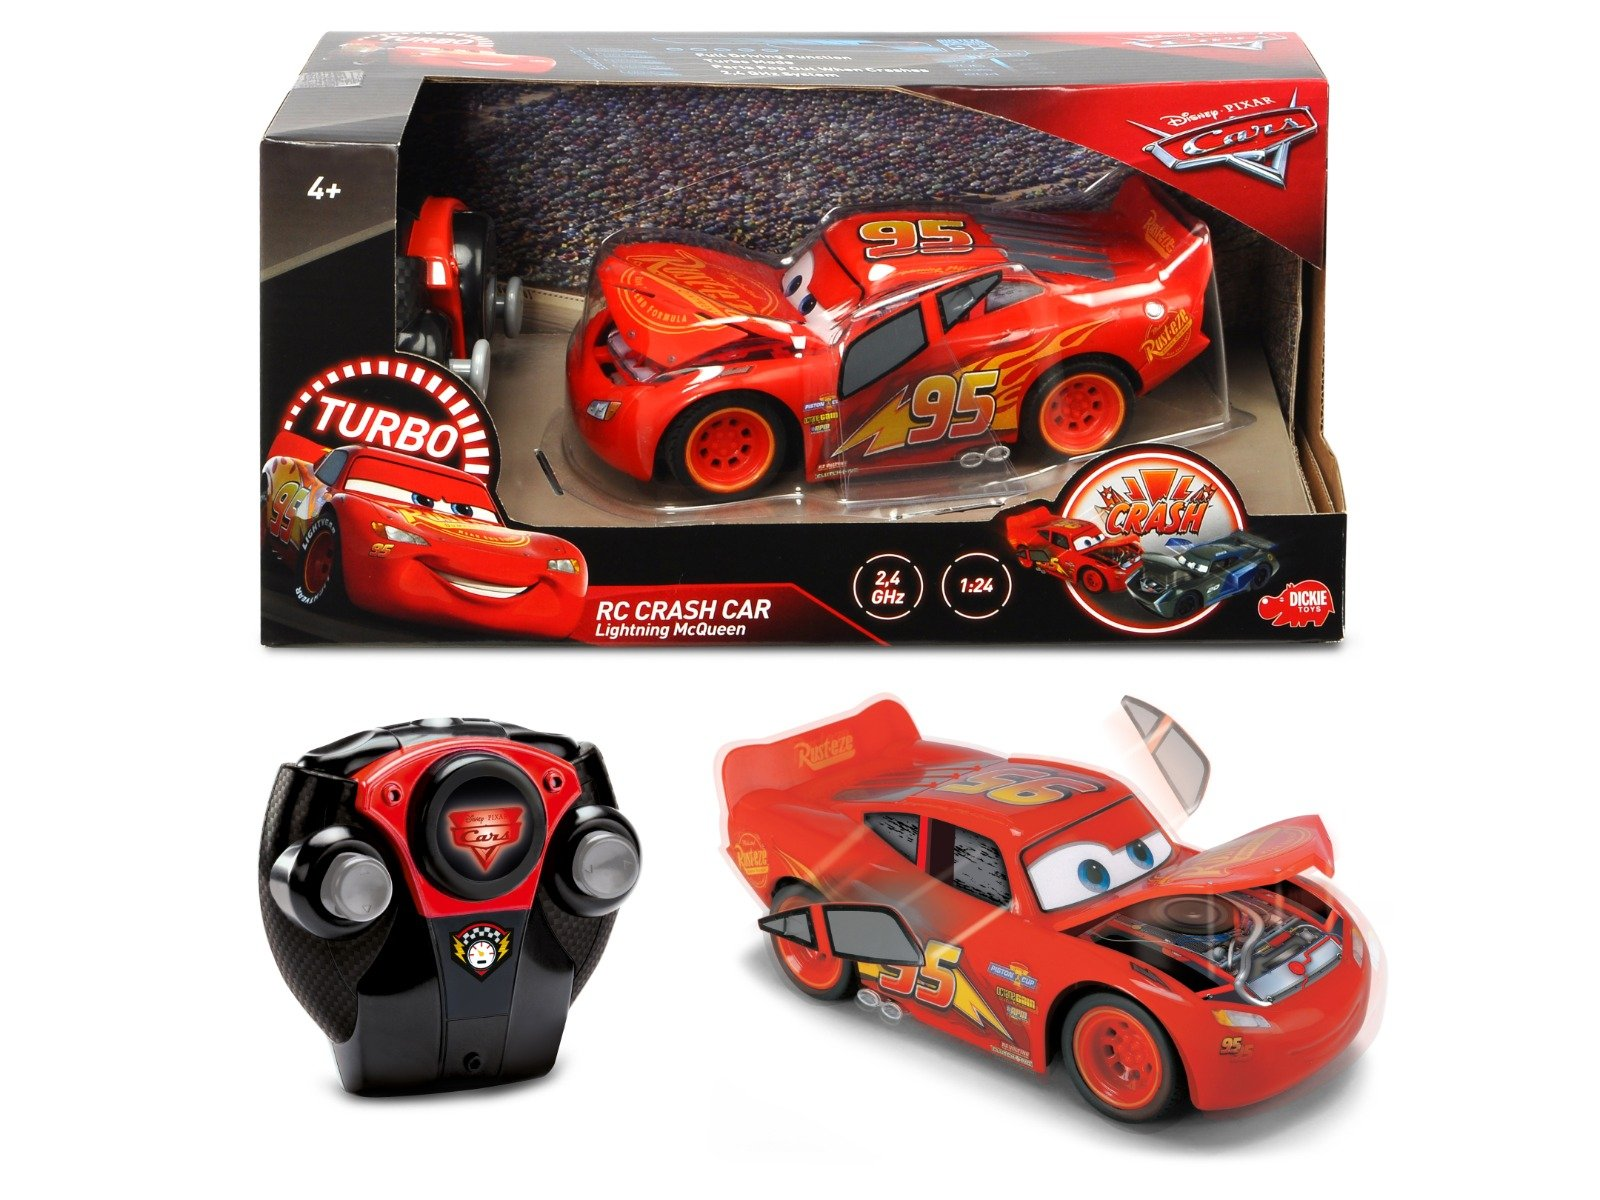 Masinuta McQueen Crazy Crash Cars 3 RC 1:24